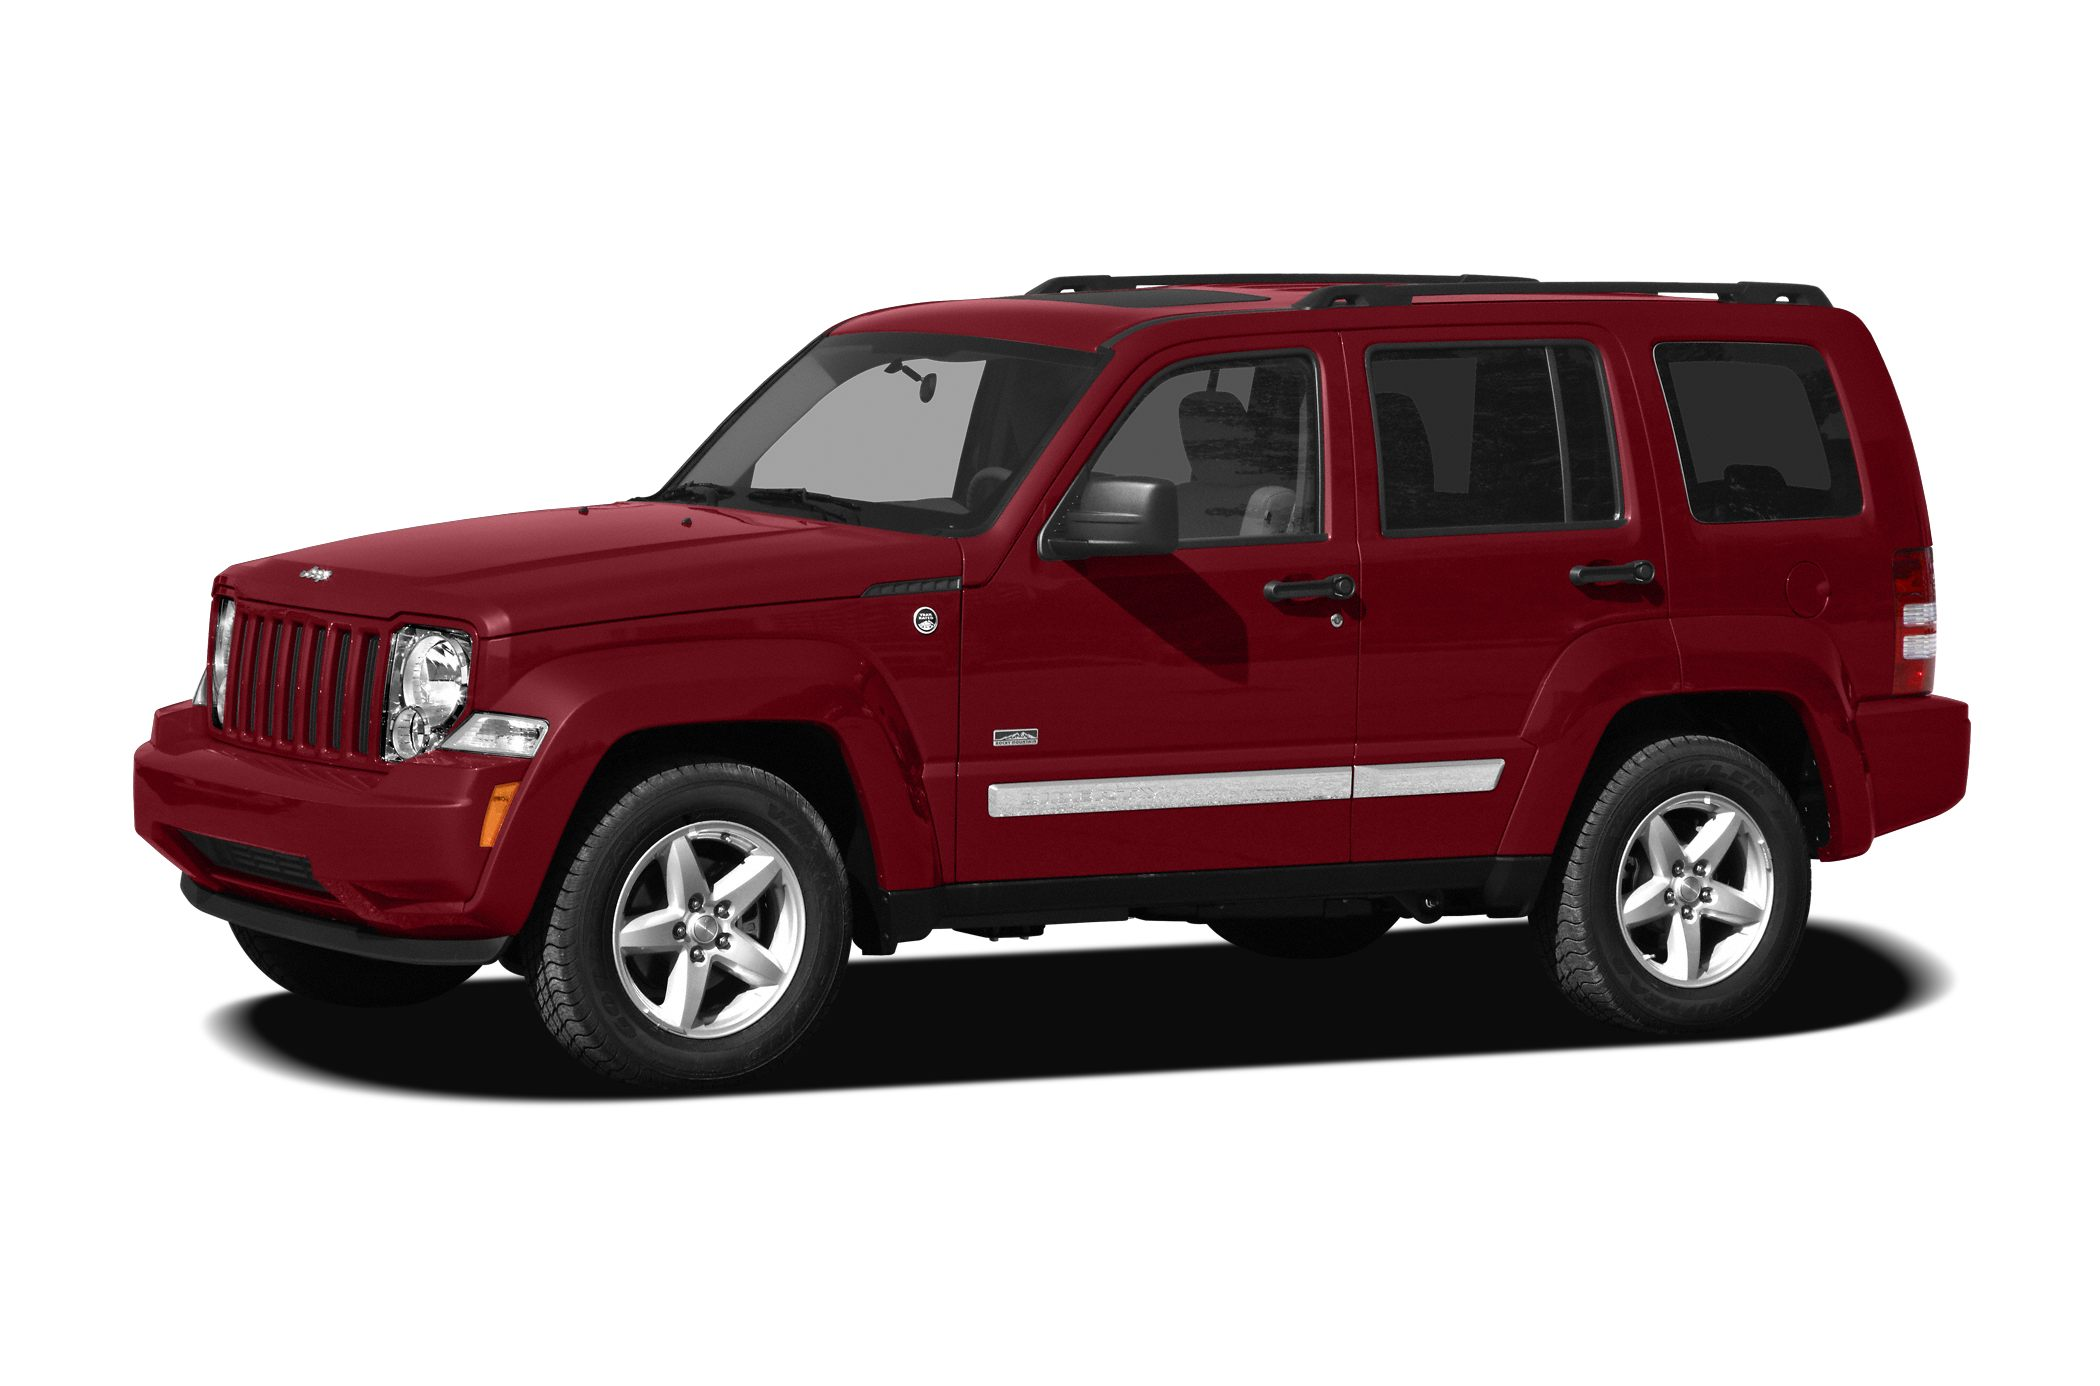 2009 Jeep Liberty Sport SUV for sale in Pittsburgh for $13,938 with 70,606 miles